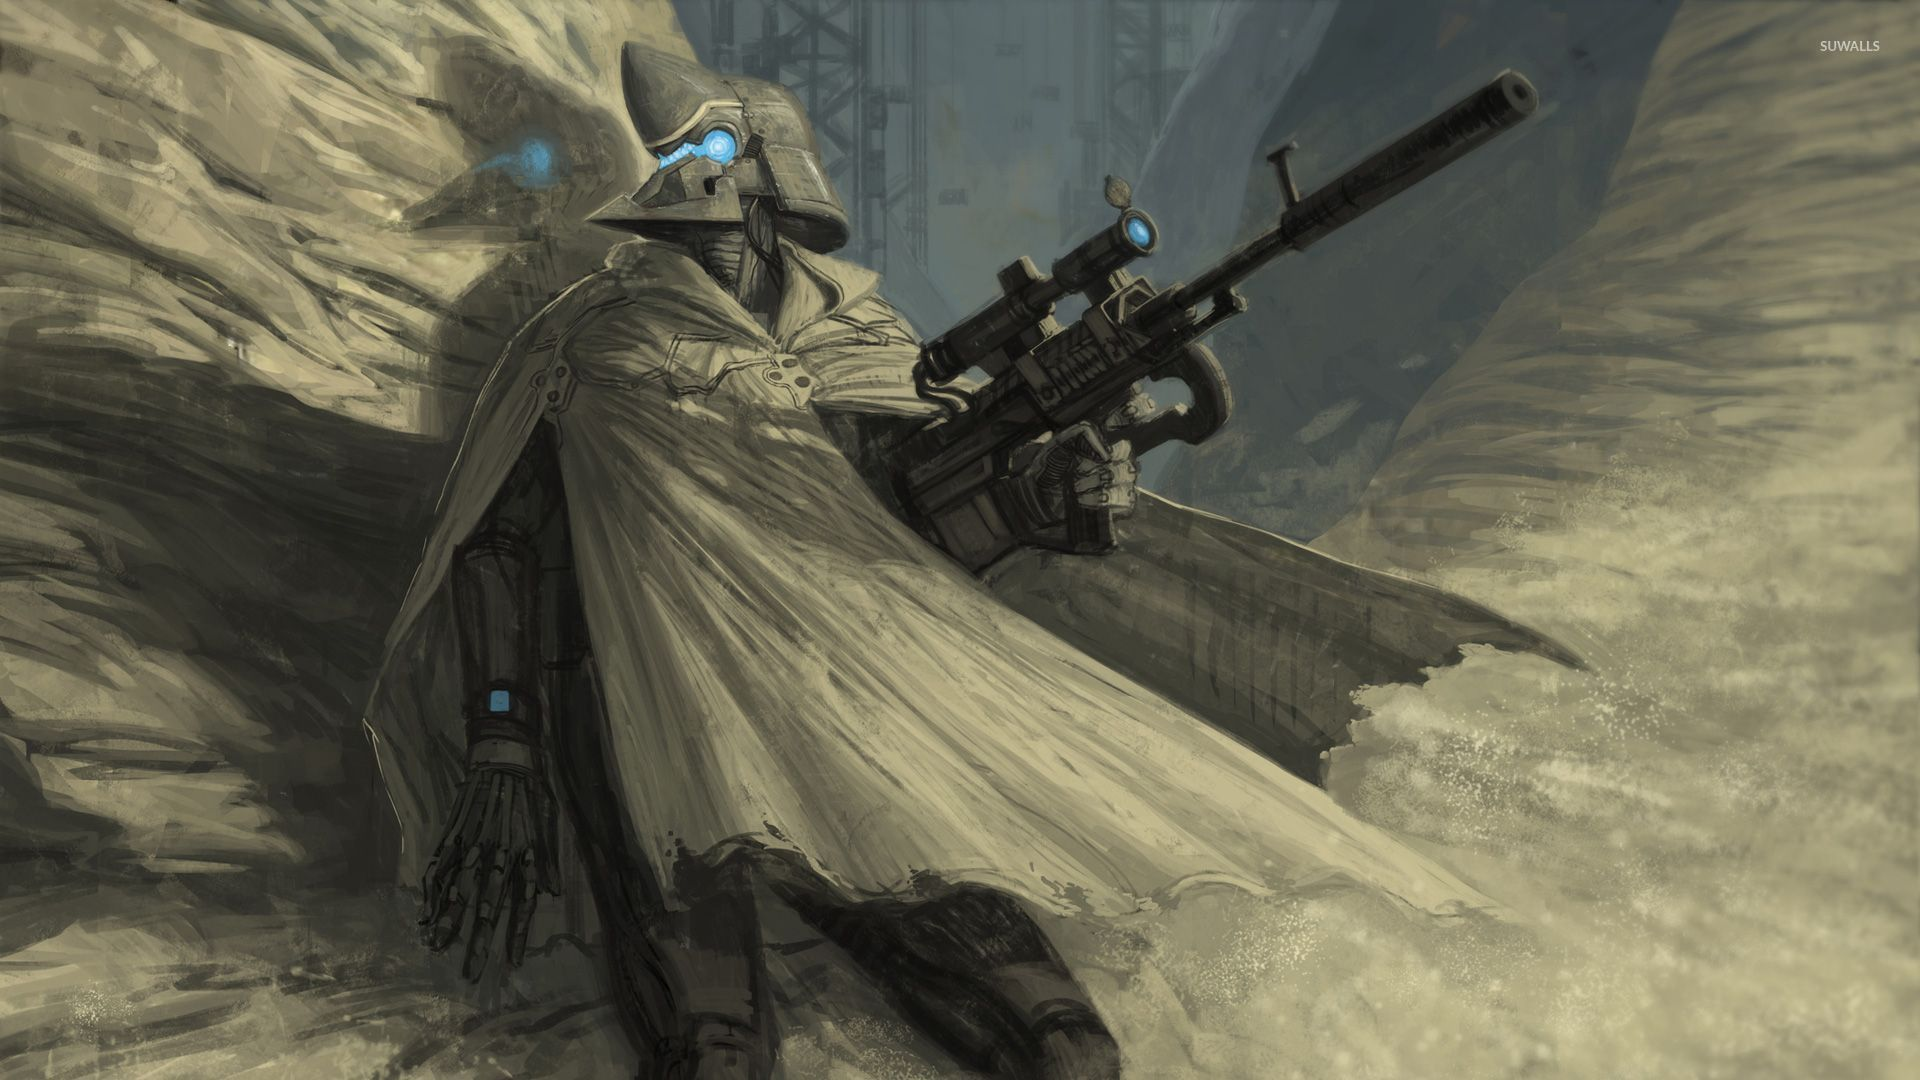 Futuristic Sniper Soldier Wallpaper